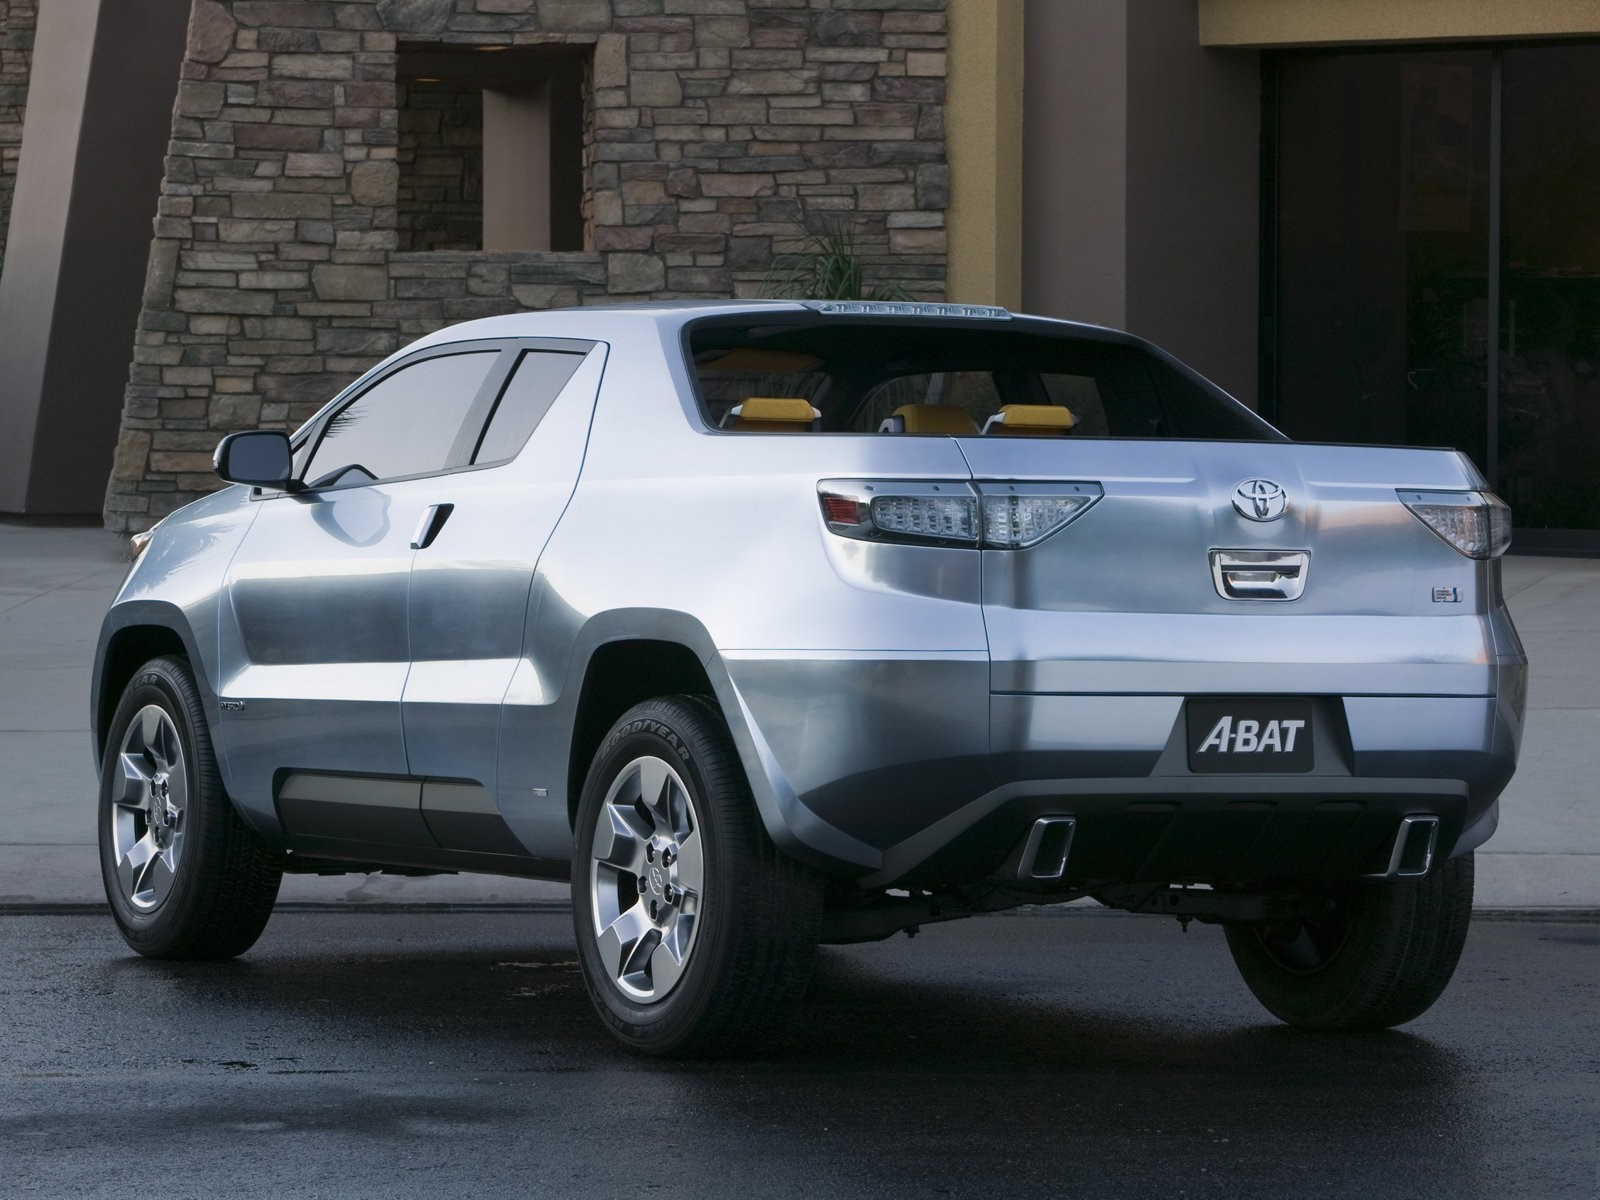 2008 Toyota A-BAT Pick-up Concept